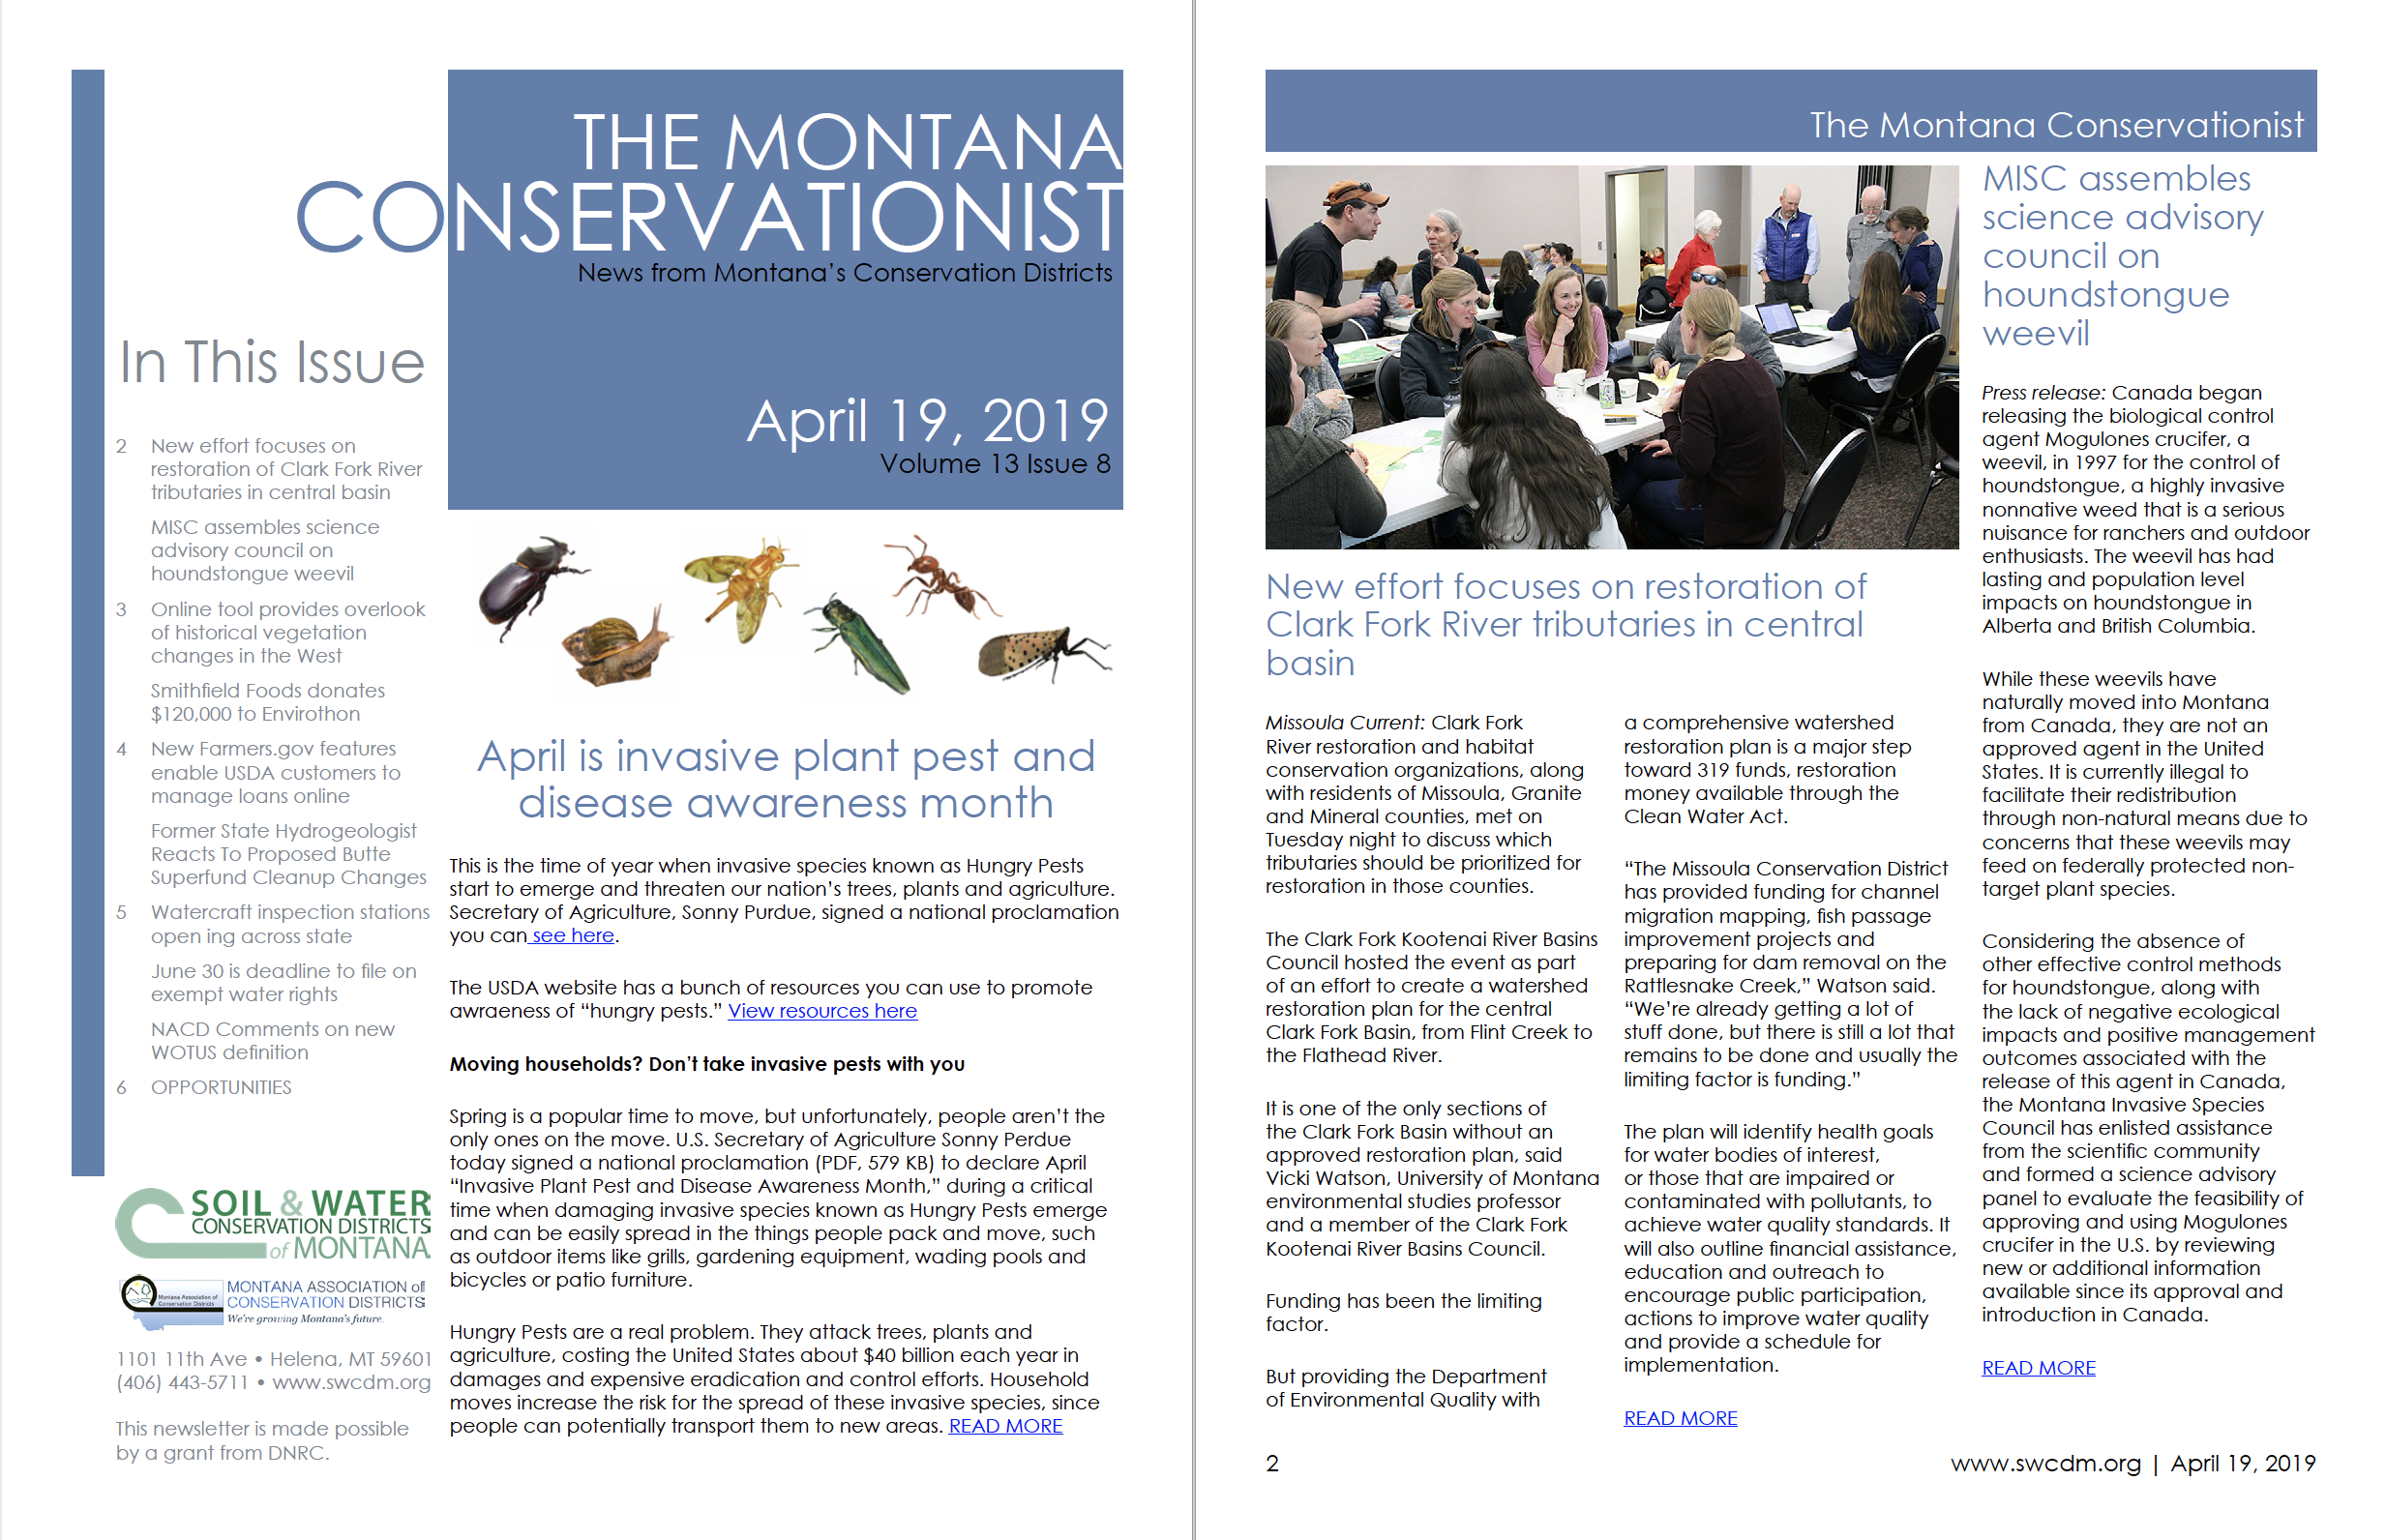 The Montana Conservationist April 19